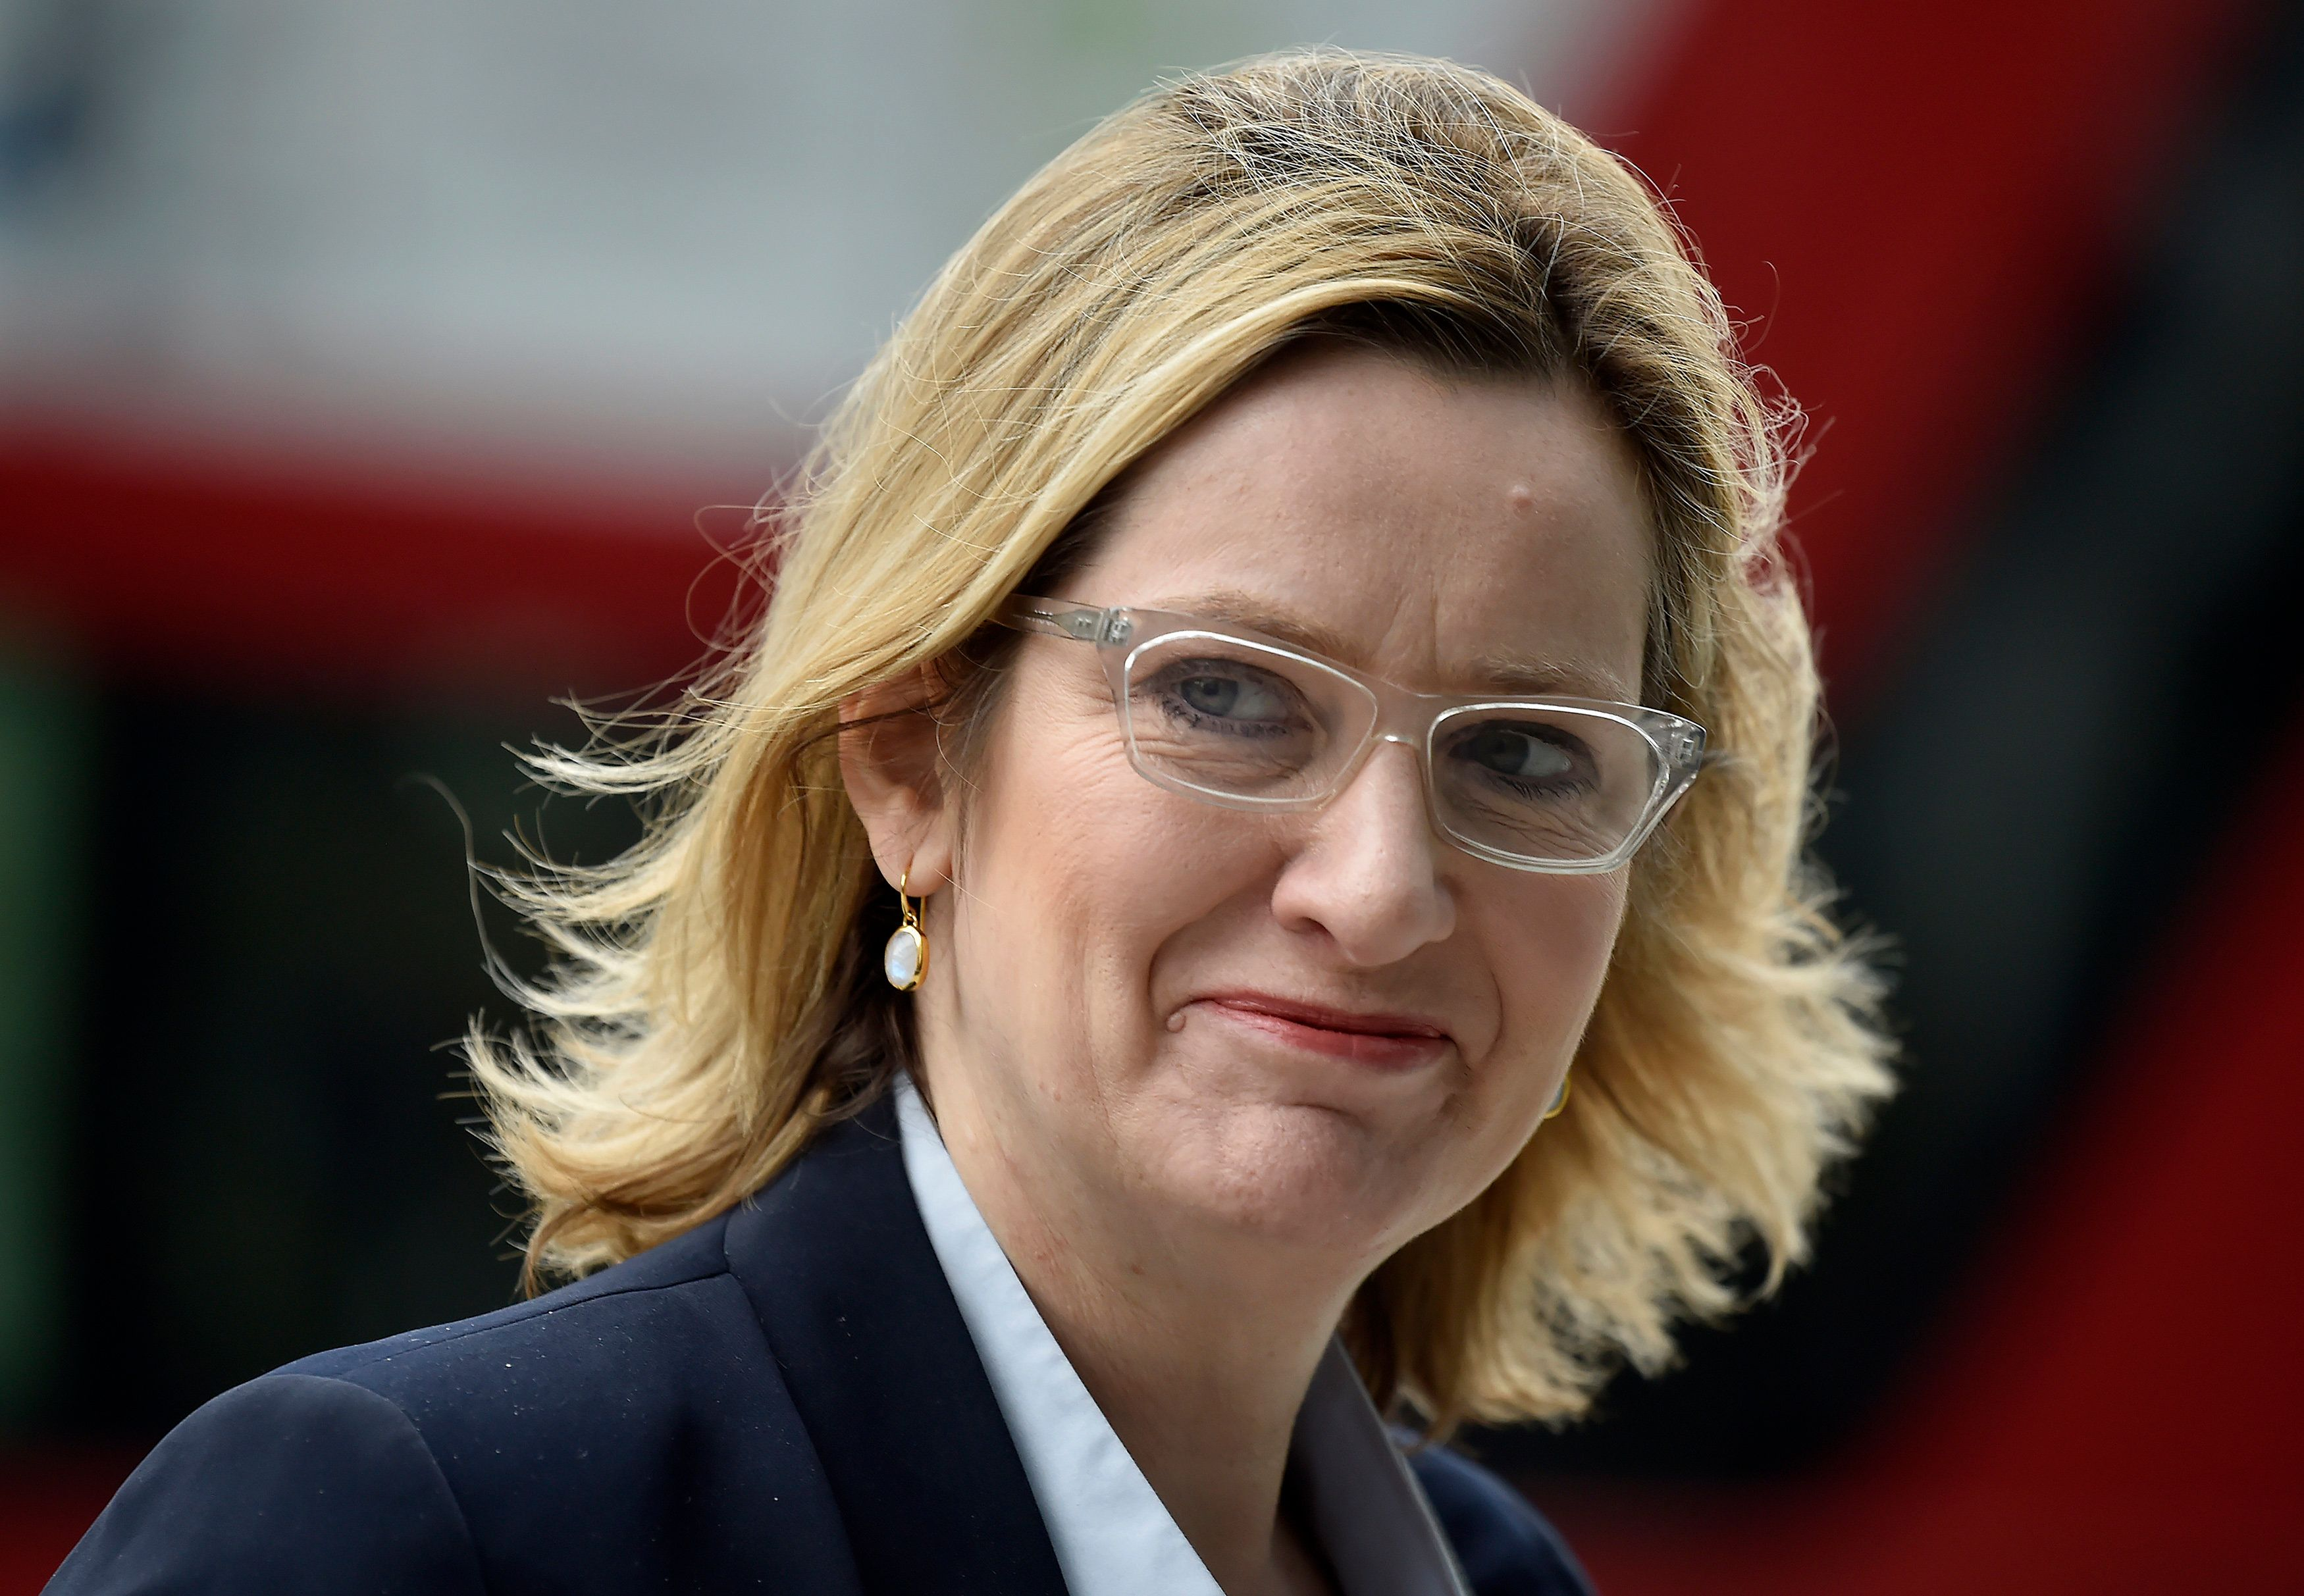 A new immigration charge could cost the NHS millions of pounds and make staff shortages worse, Home Secretary...